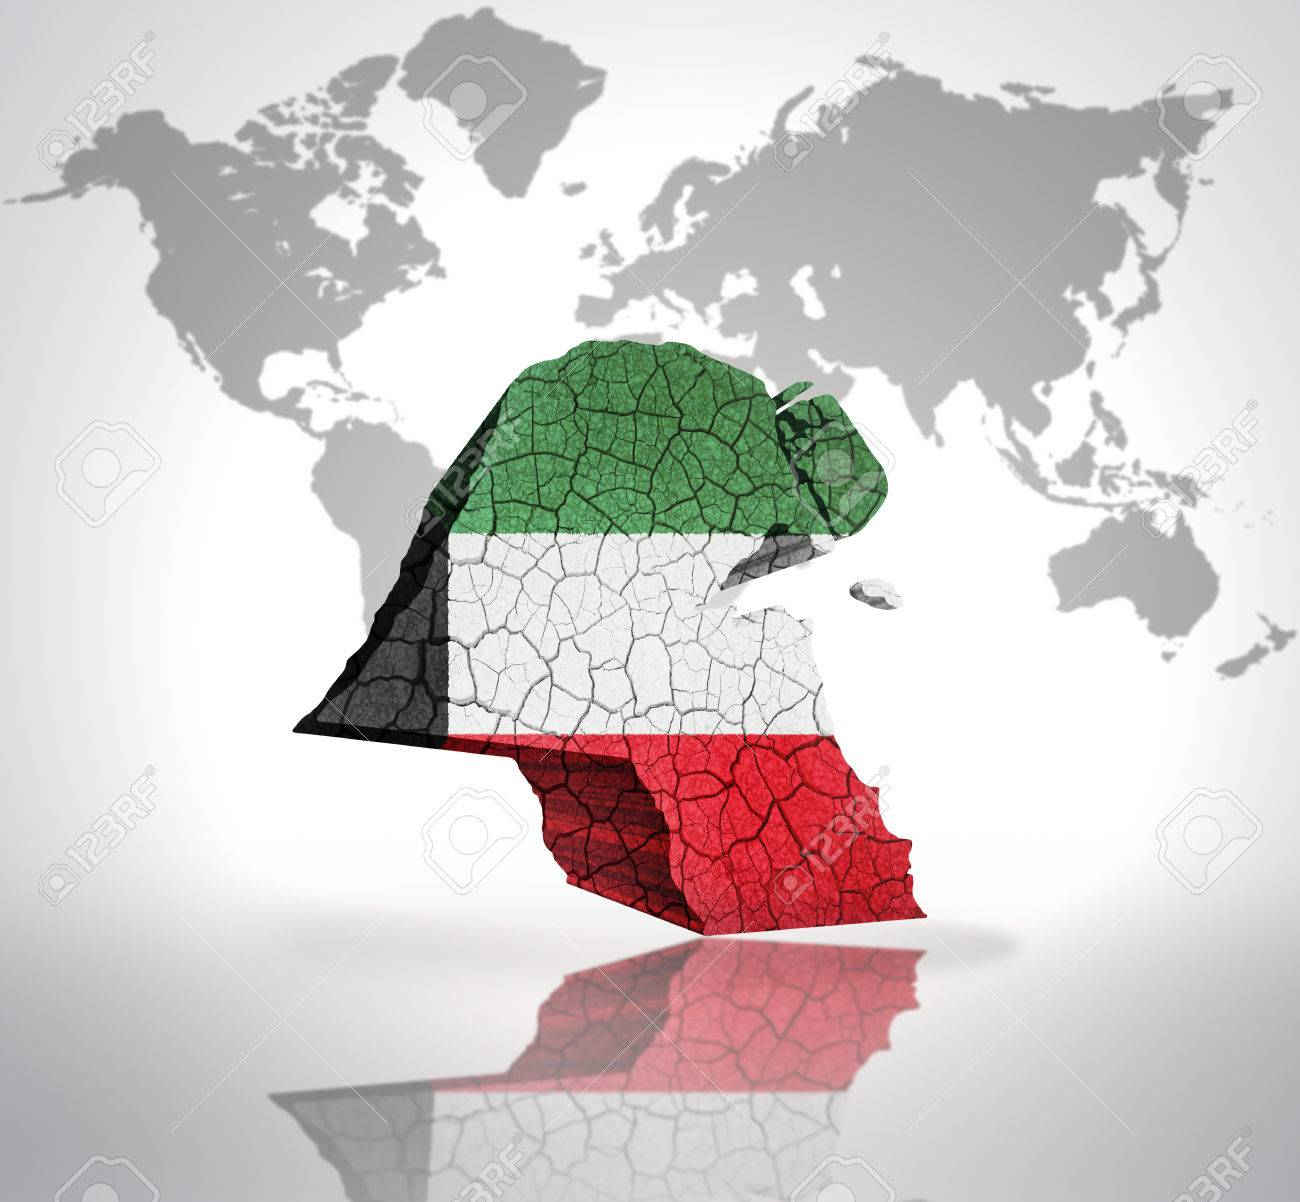 Map of kuwait with kuwait flag on a world map background stock map of kuwait with kuwait flag on a world map background stock photo 32849755 gumiabroncs Image collections